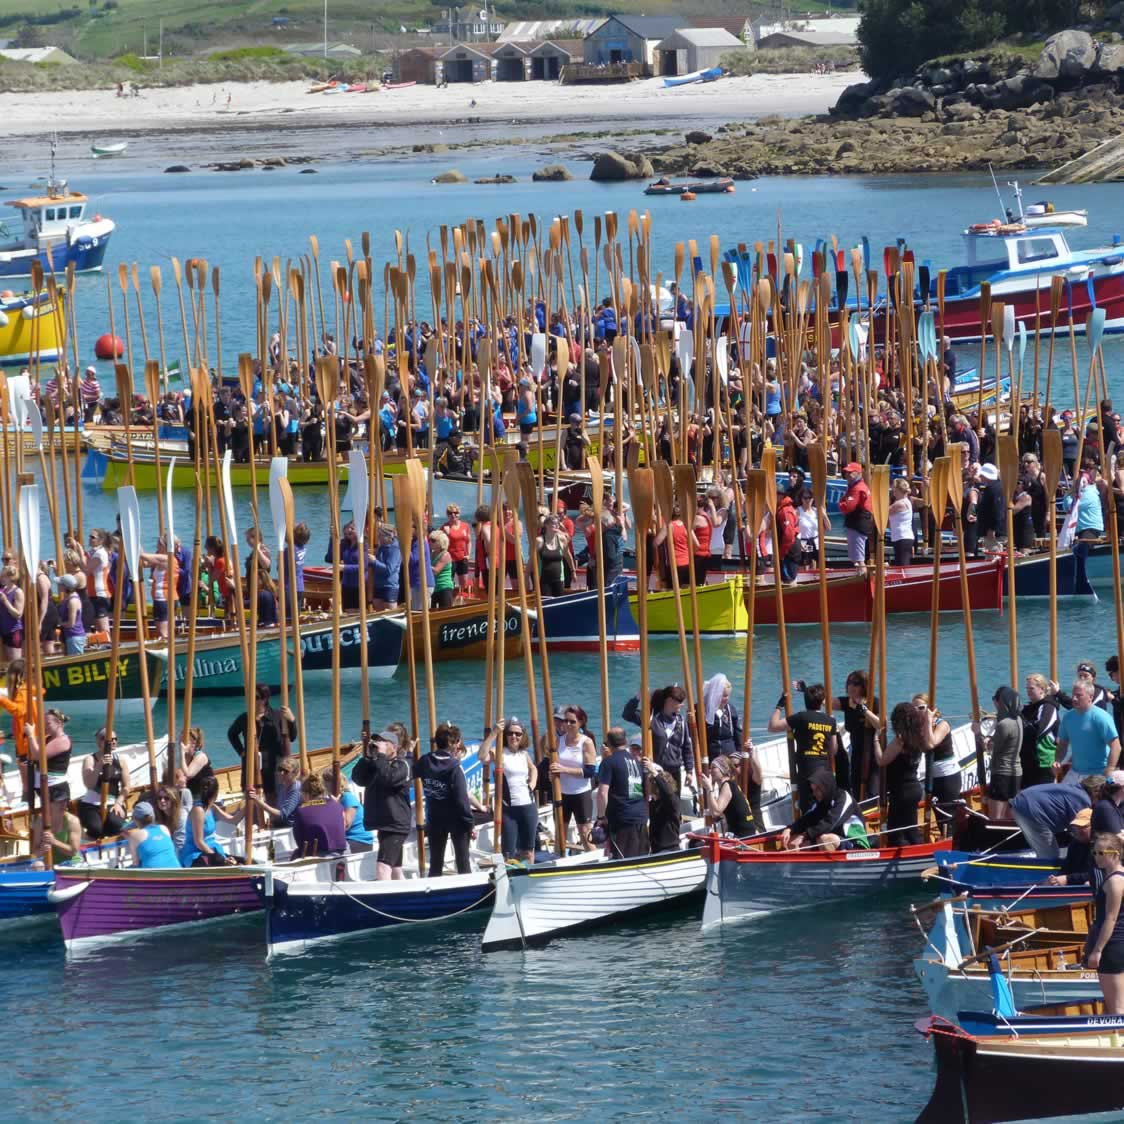 Millies-photos-Scillies-2014 522